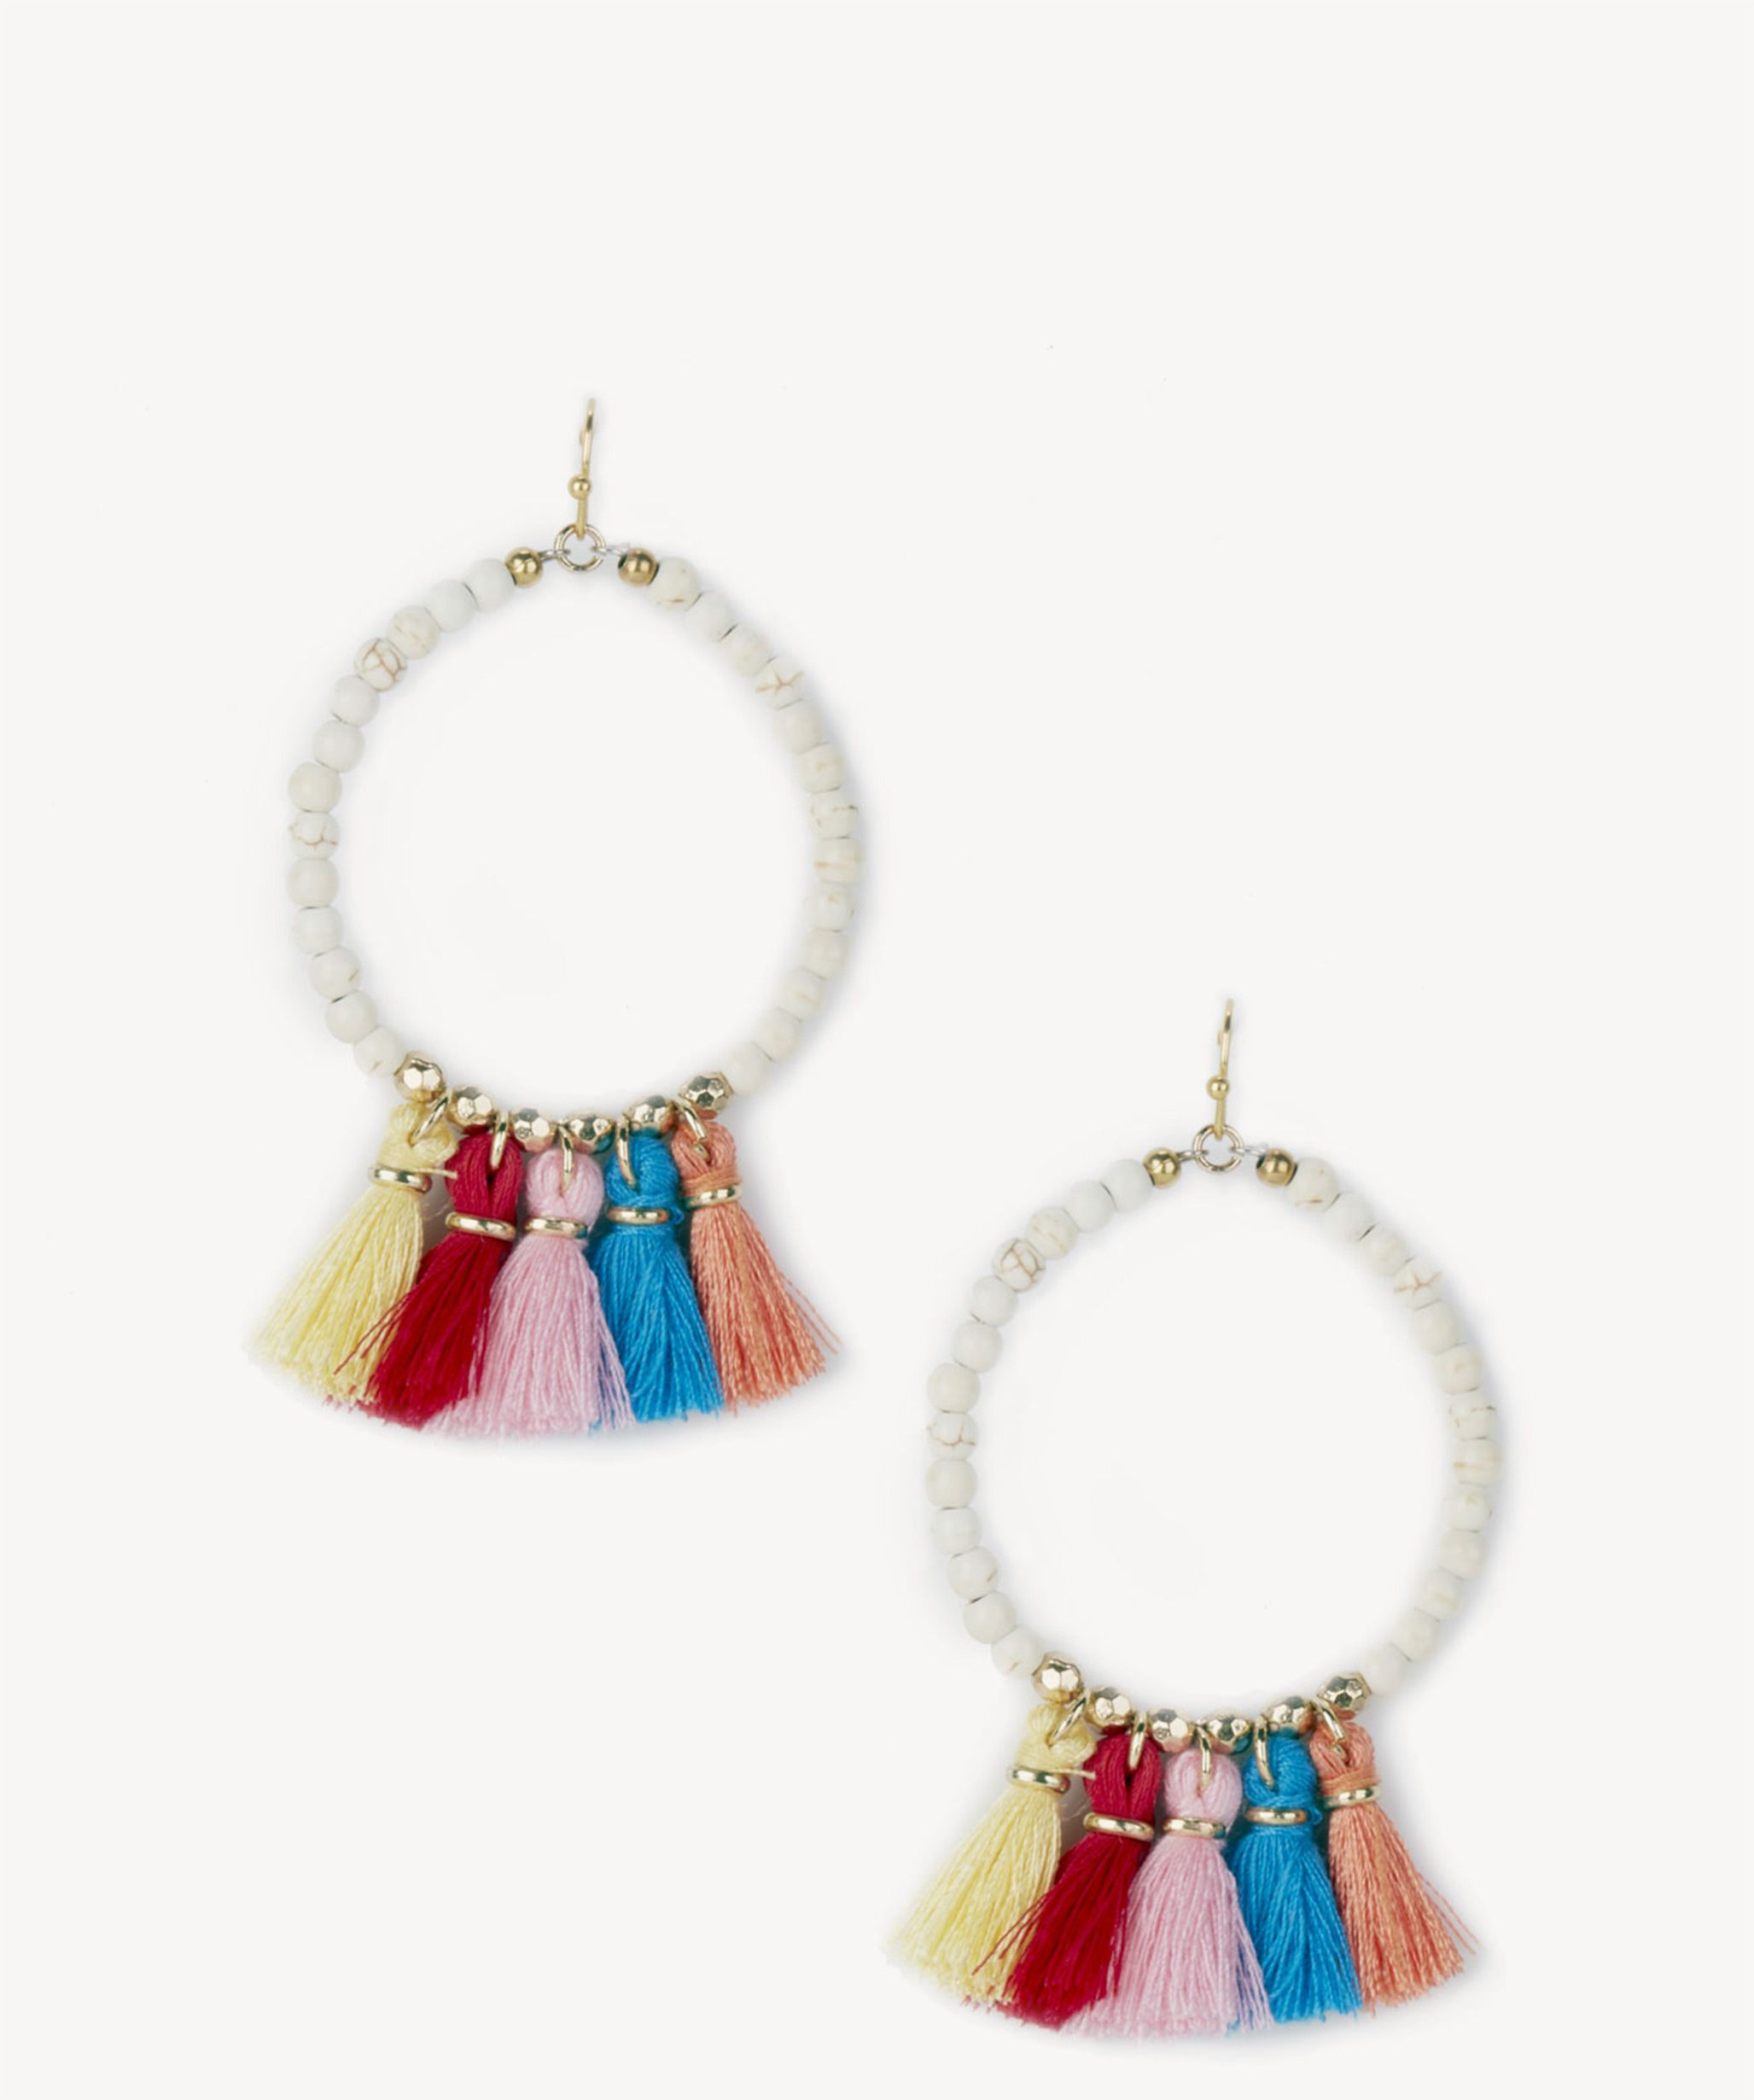 Sole Society Womens Le Carnival Teardrop Earrings White Multi One Size From Sole Society TbIumM